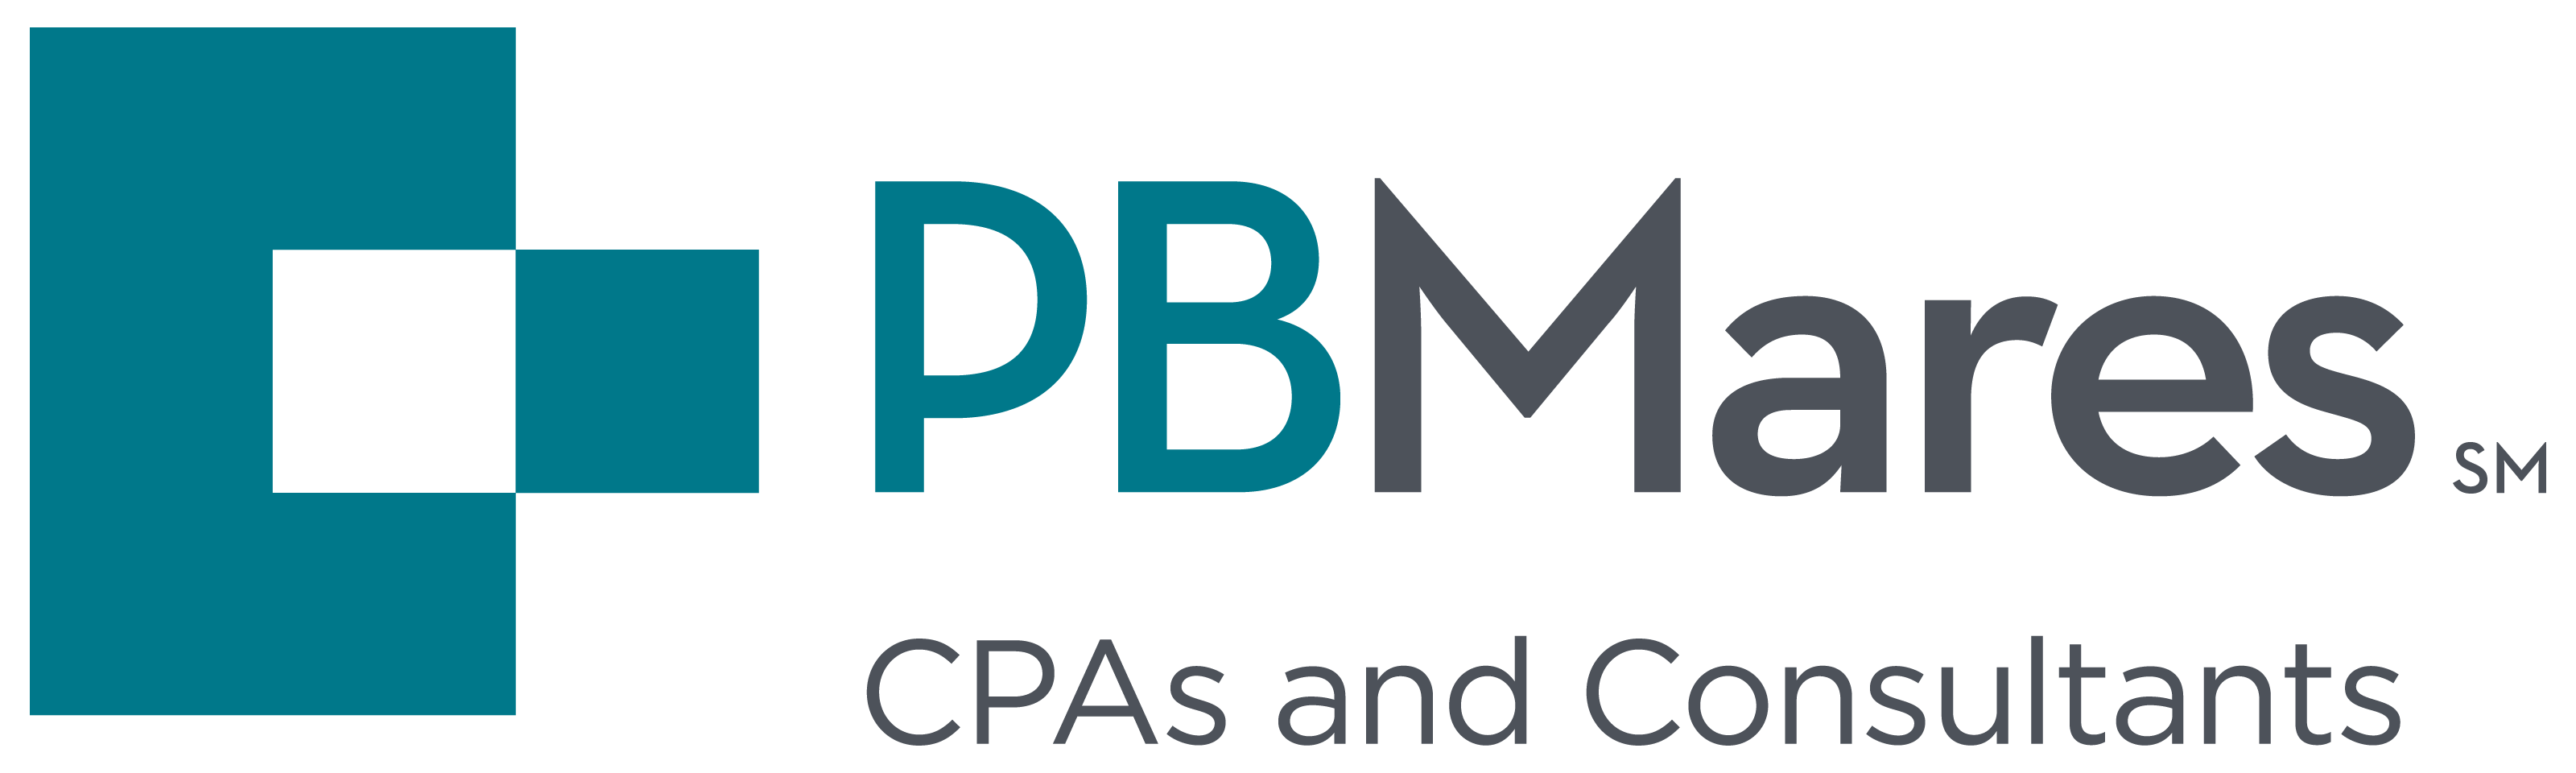 pbmares cpas and consultants logo